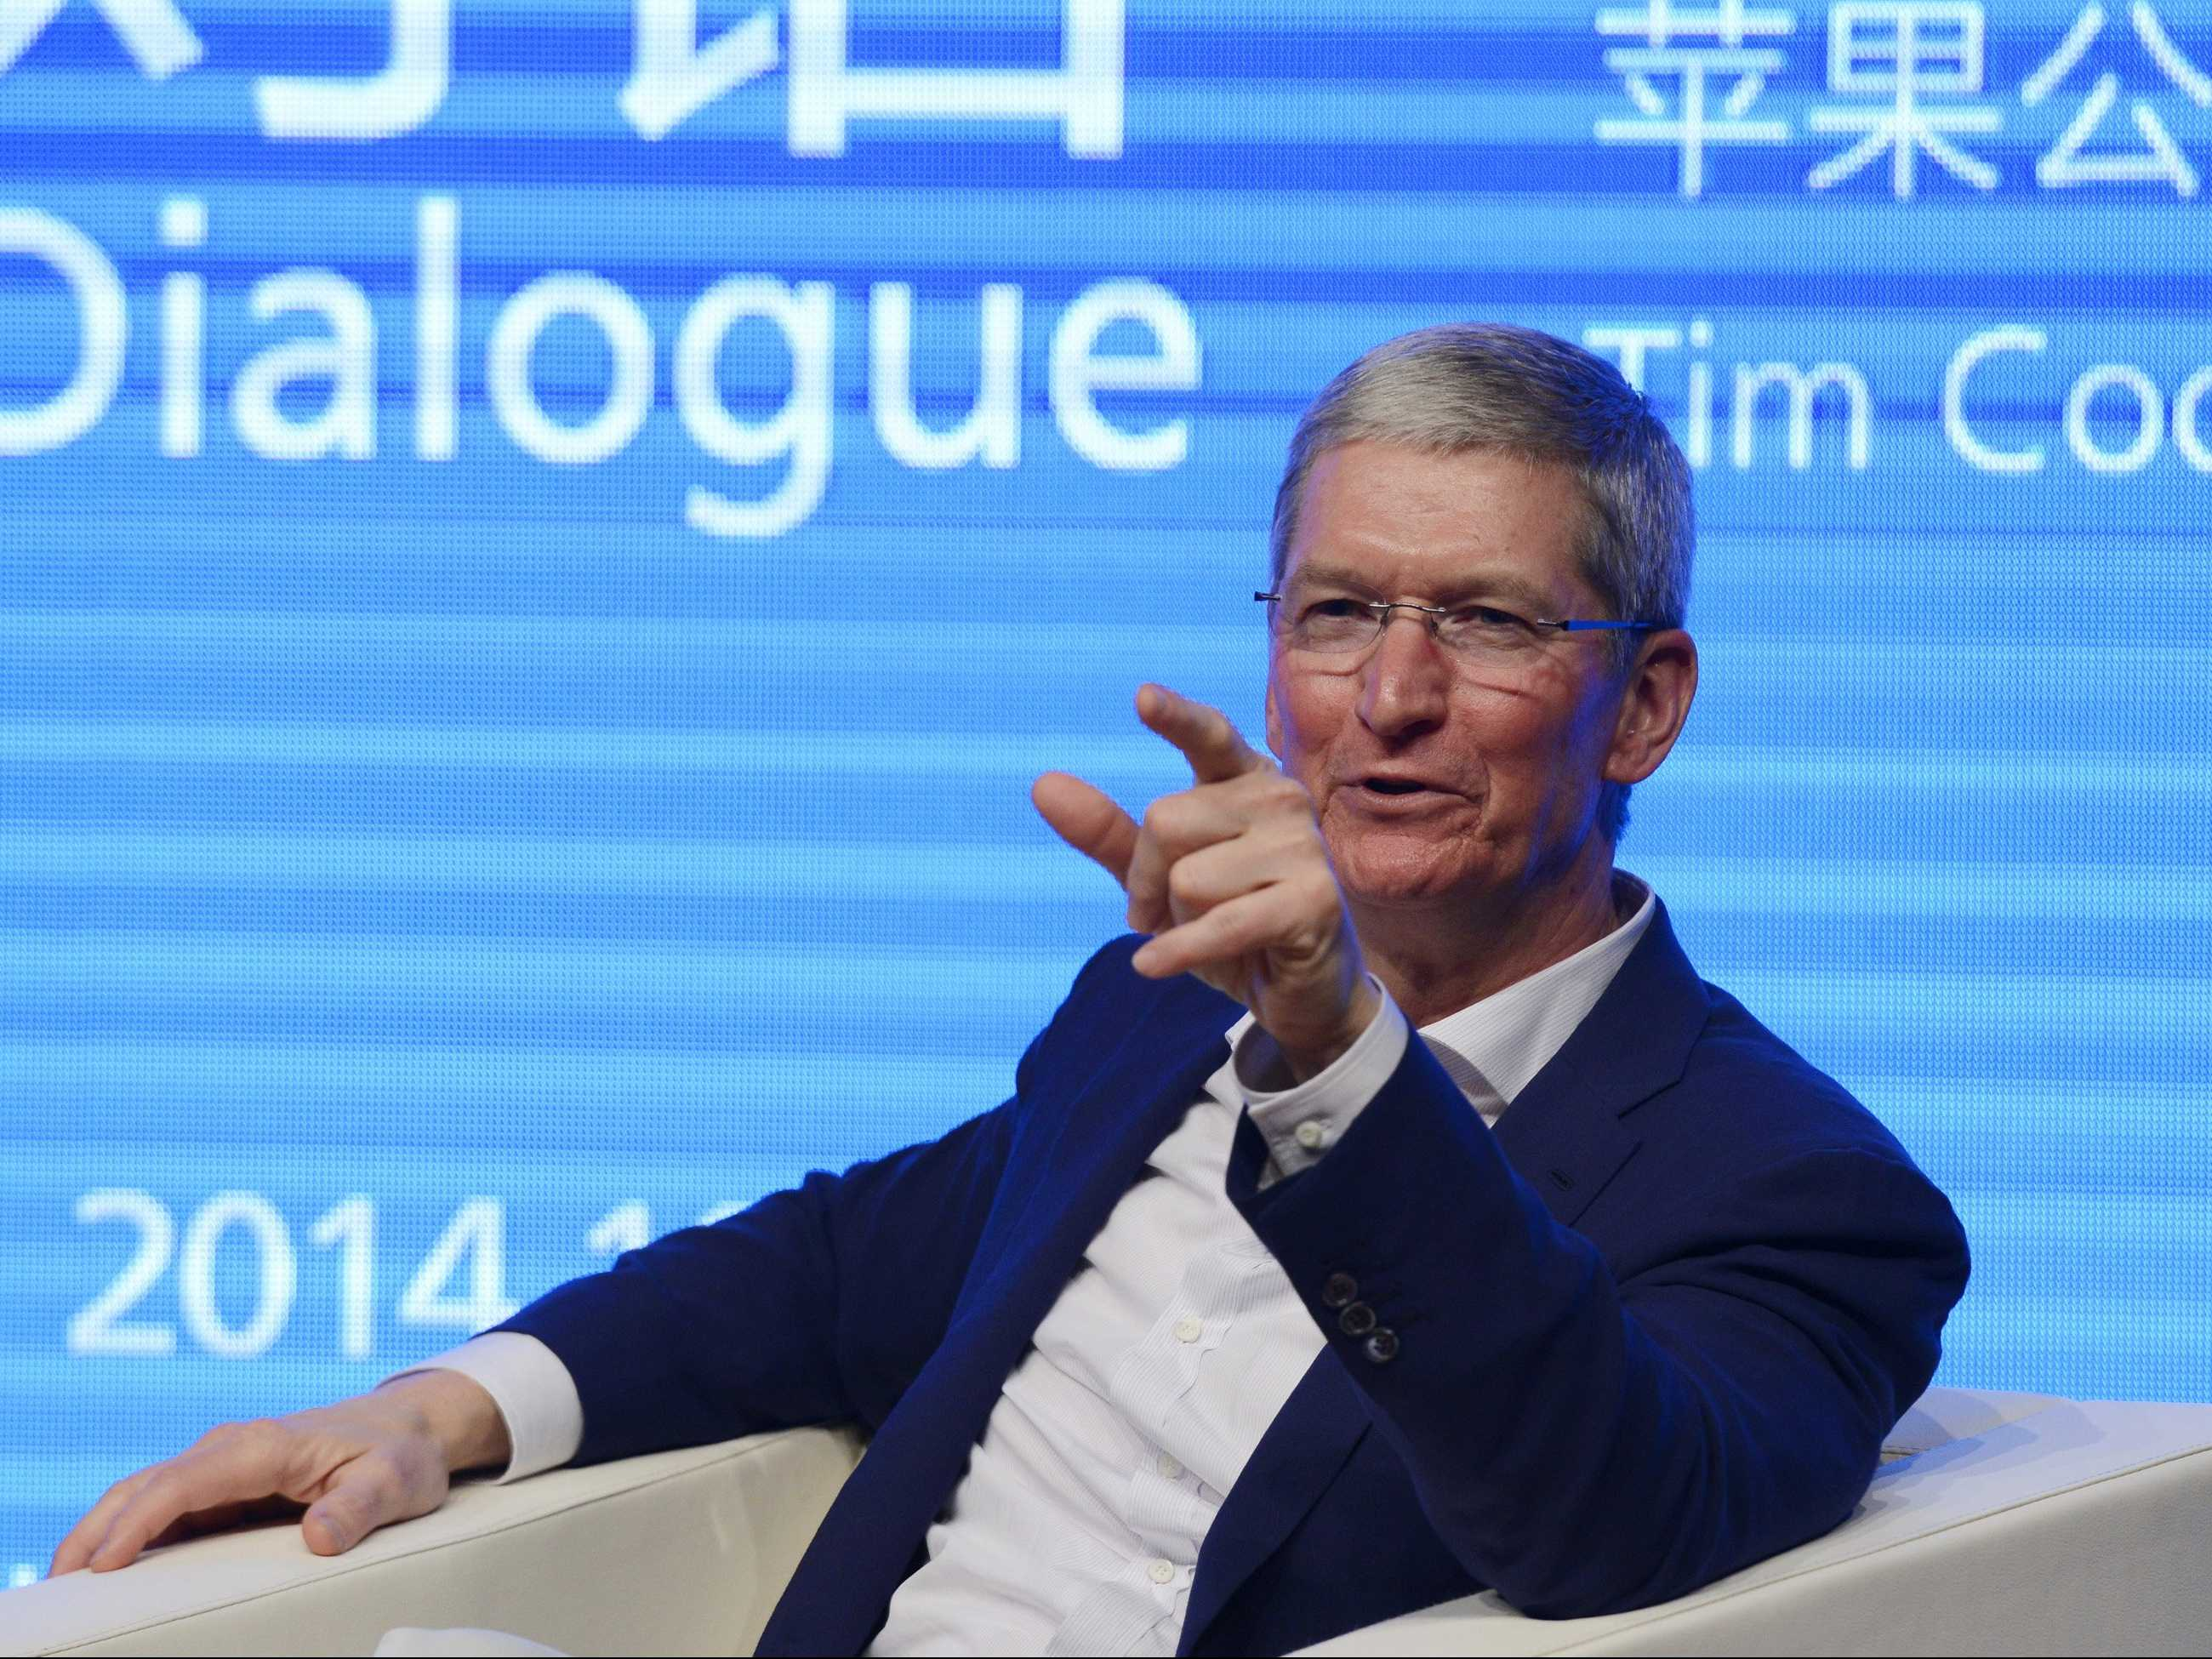 tim-cook-talks-about-apples-astonishing-success.jpg